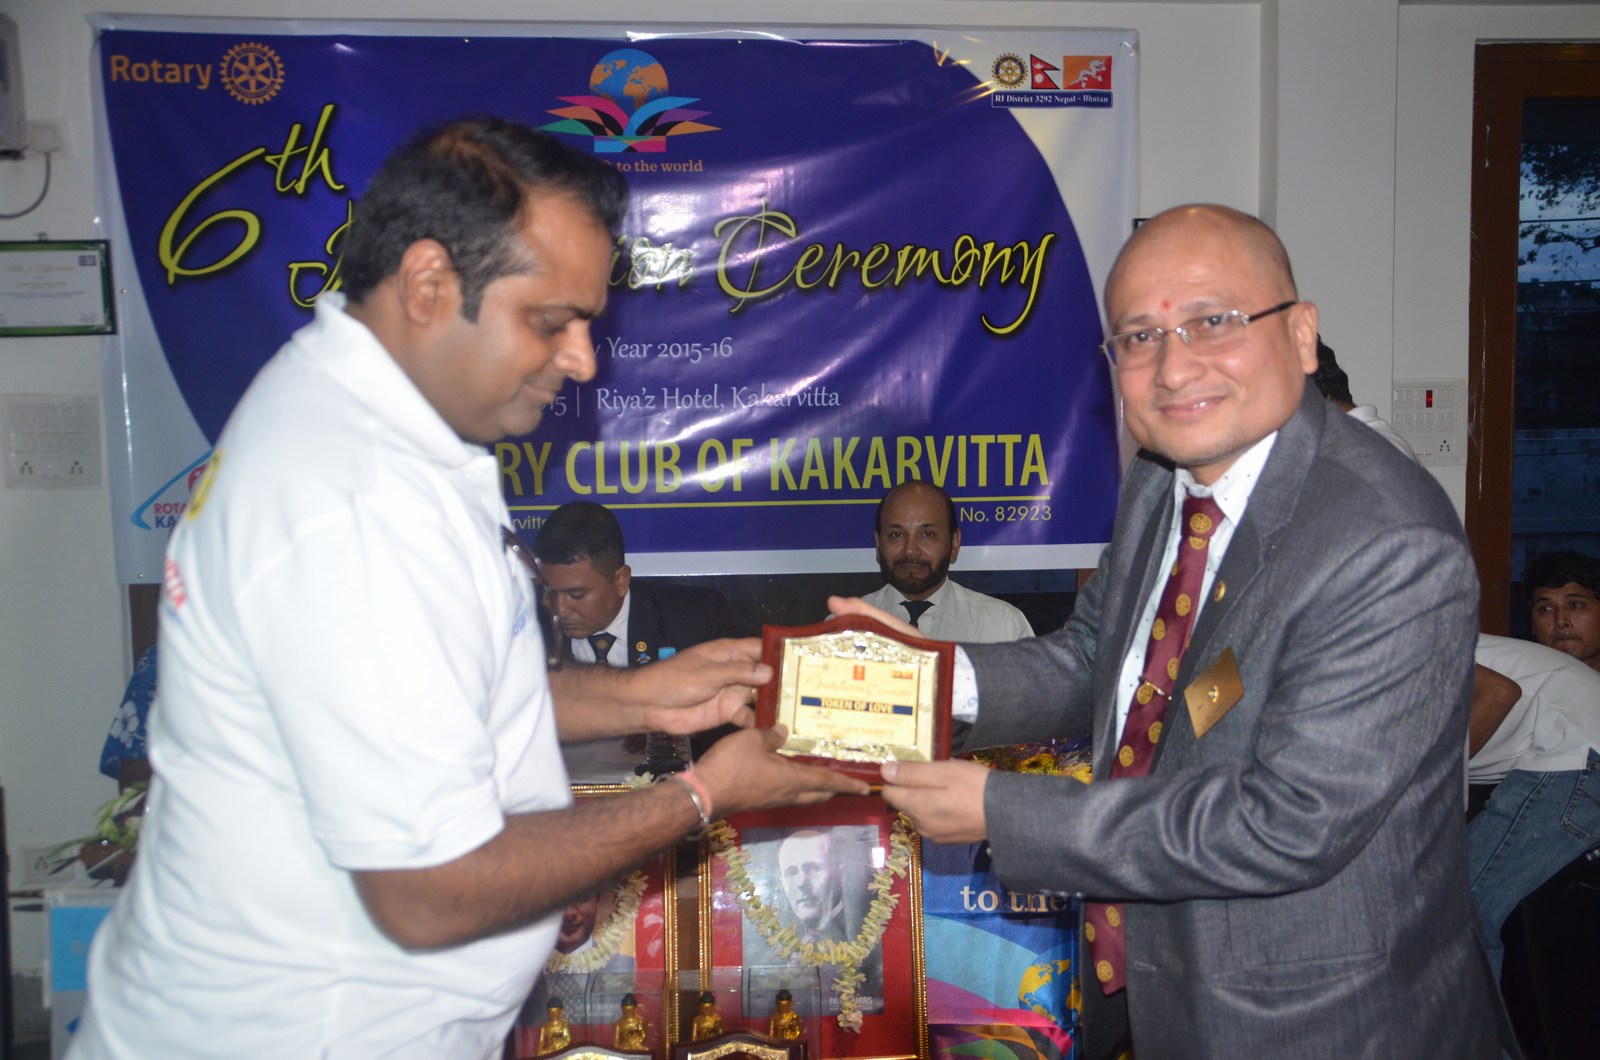 6th Installation Ceremony 2015 16 Rotary Club Of Kakarvitta 14